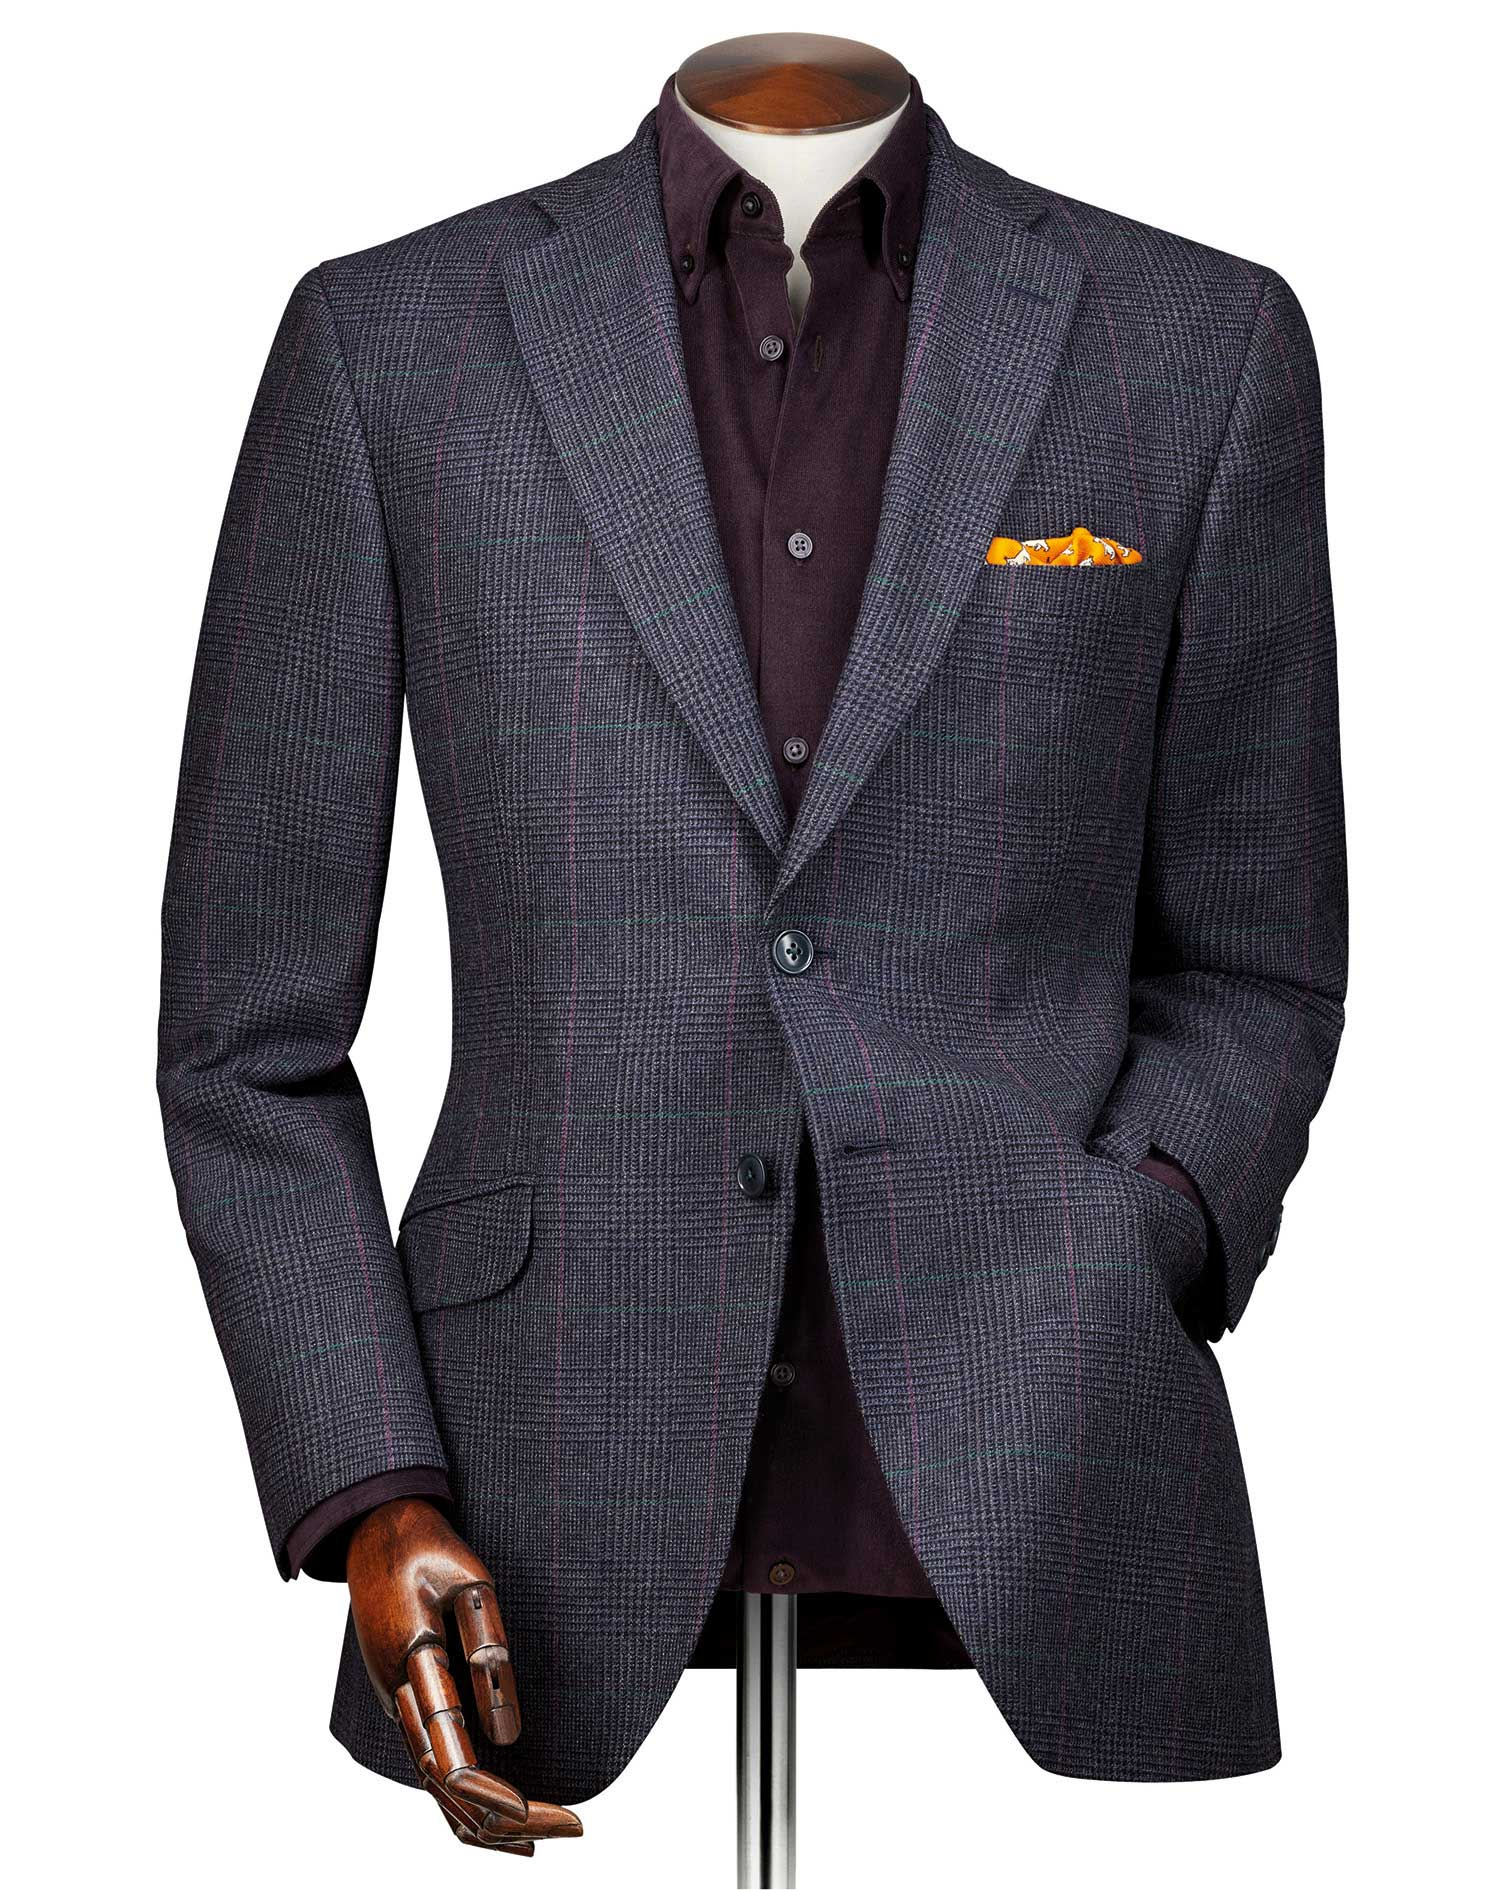 Earn 5% cash back at Charles Tyrwhitt Shop Now You may earn 5% cash back, up to a maximum of $ per transaction, for each qualifying purchase made at datingcafeinfohs.cf